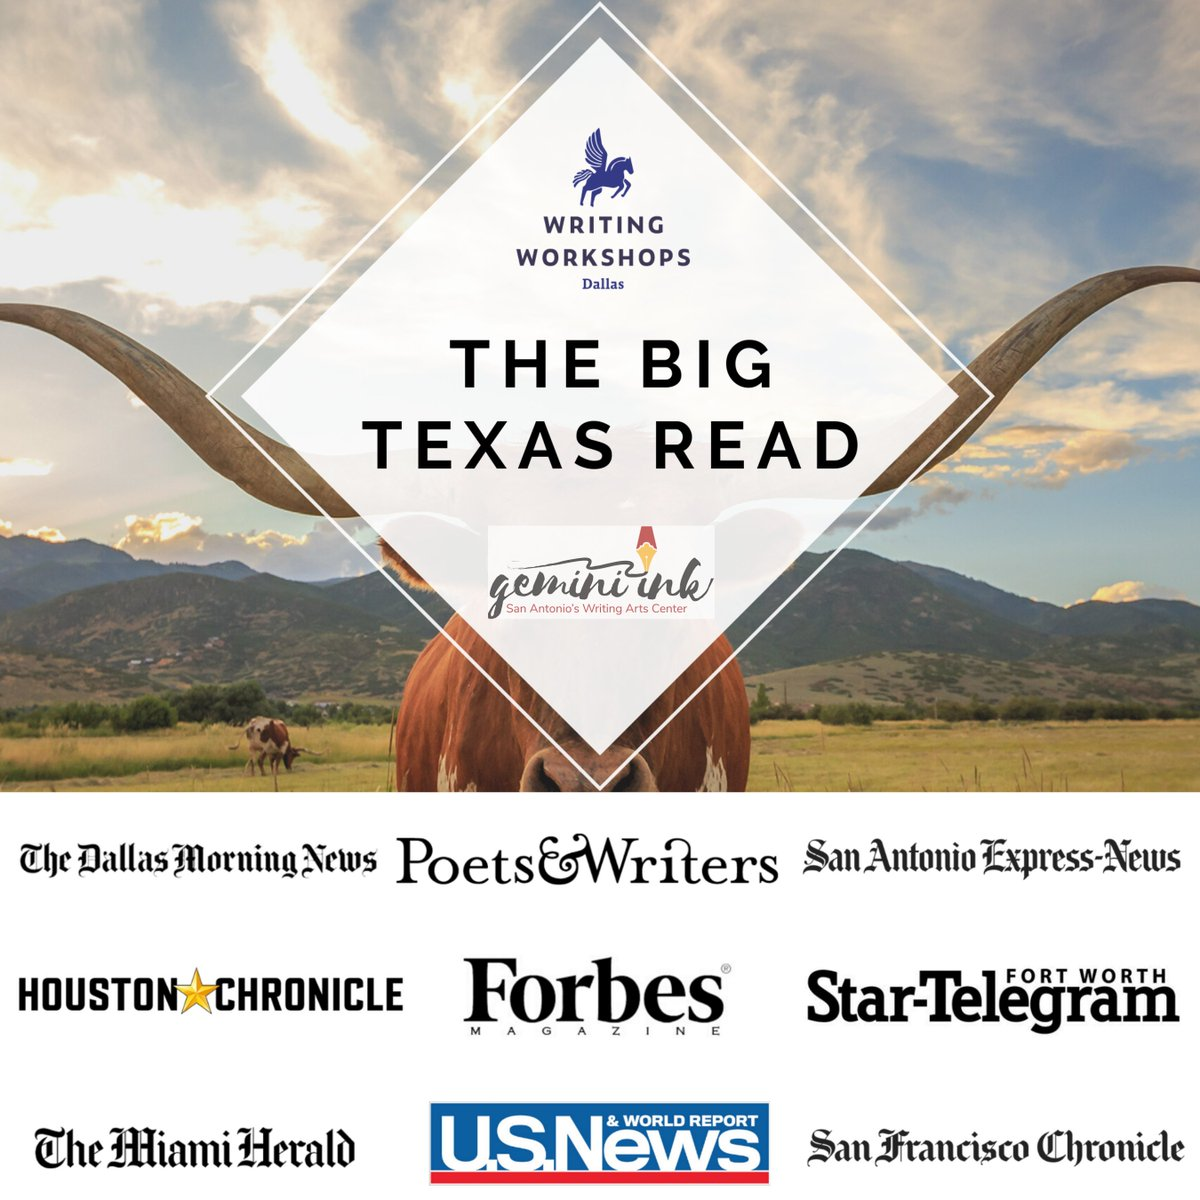 Join us on Zoom for The Big Texas Read TONIGHT (9/30) at 7PM CST for a conversation between Edgar-winning novelist @joelansdale and bestselling novelist @HarryHunsicker. Presented by @DallasWriters & @GeminiInk. RSVP here: writingworkshops.com/pages/the-big-…